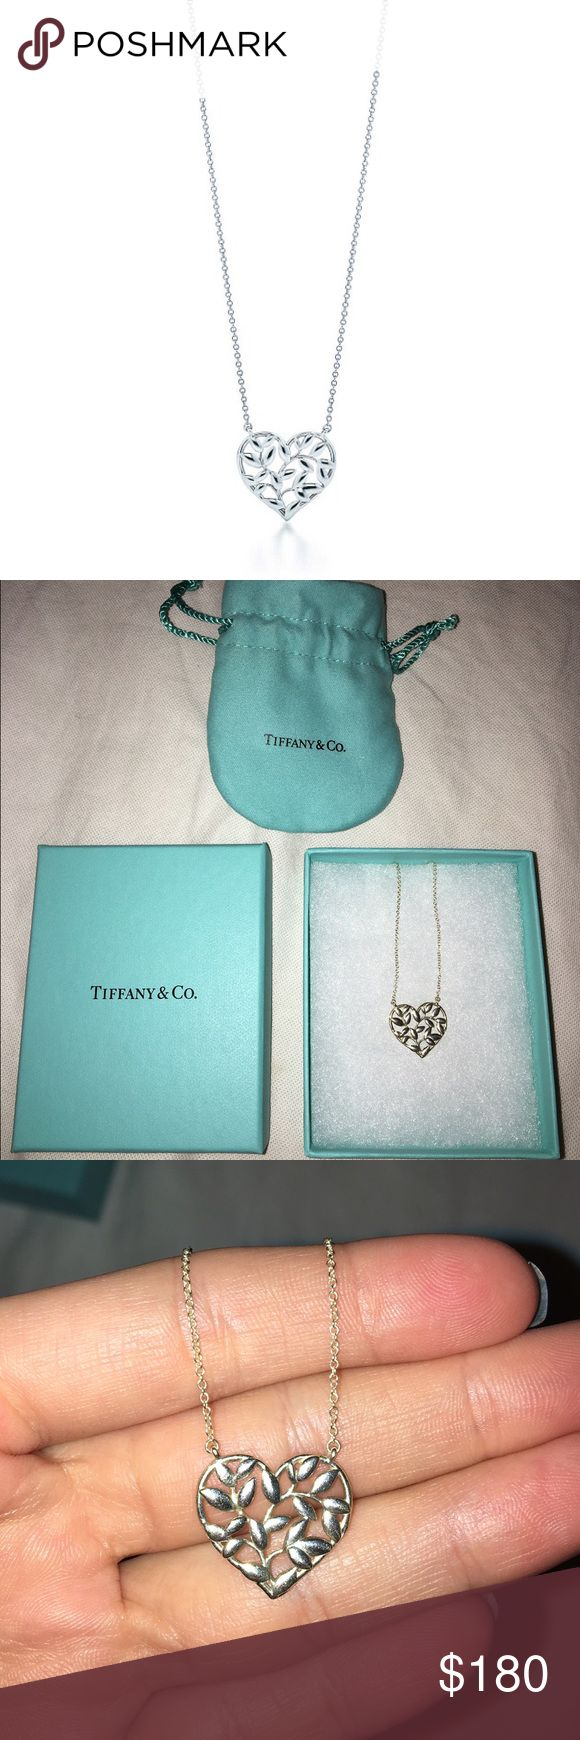 Paloma Picasso Olive Leaf Heart Pendant -barely worn-Tiffany Silver Necklace-perfect condition-comes with Tiffany box and bag-amazing deal ($225 in Tiffany stores)- Tiffany & Co. Jewelry Necklaces